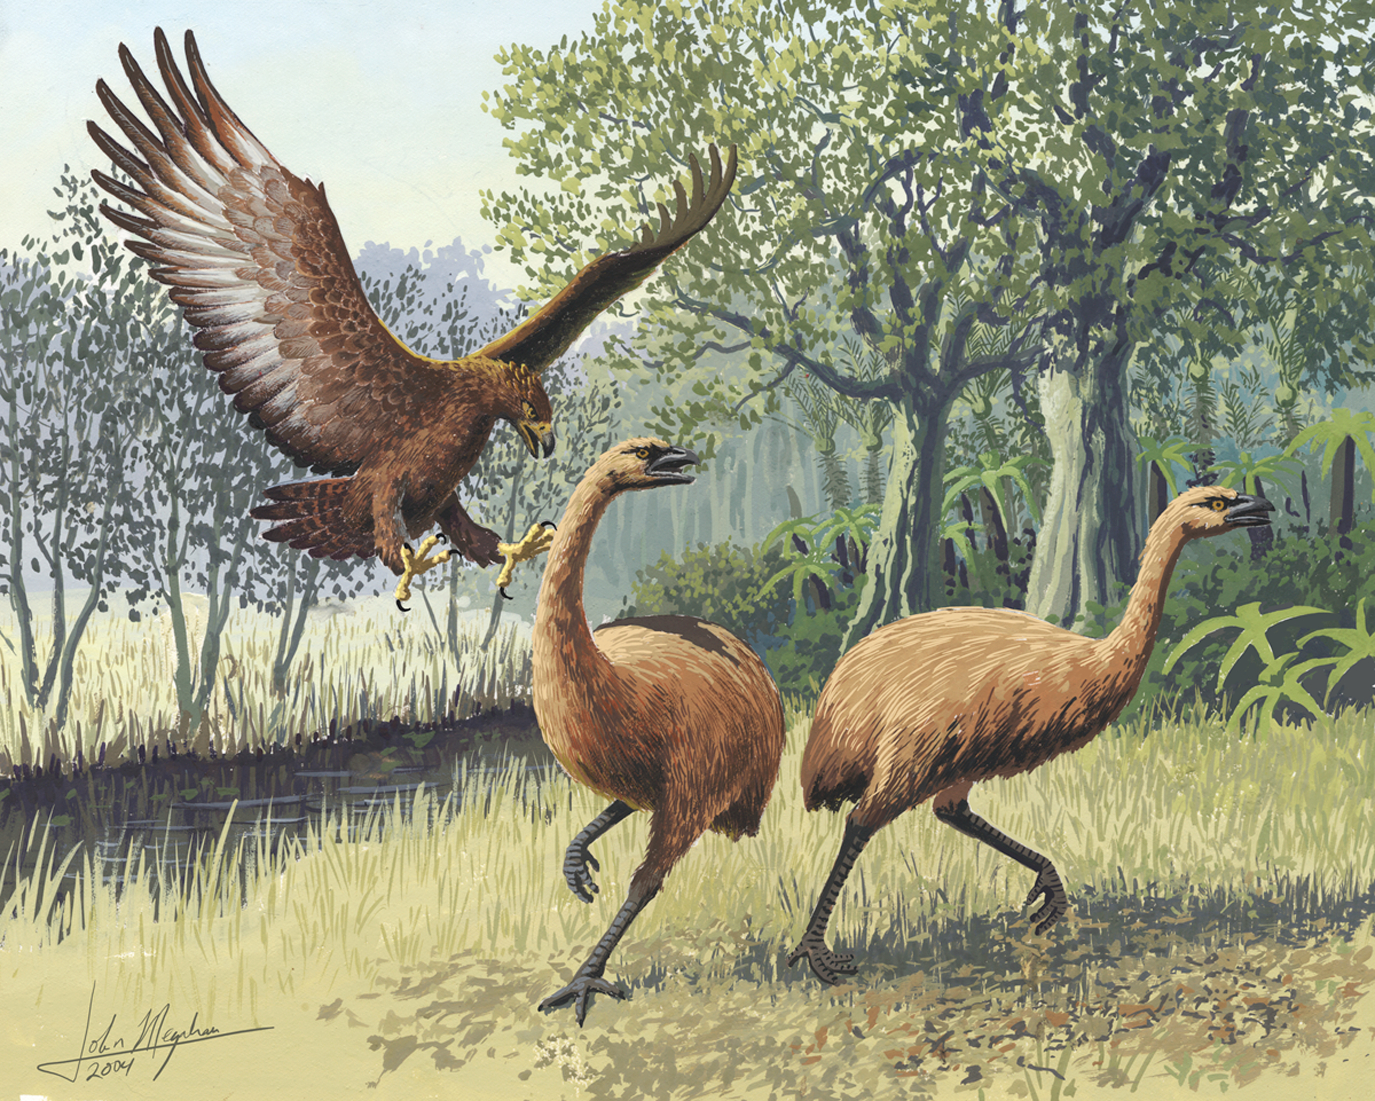 http://upload.wikimedia.org/wikipedia/commons/2/2d/Giant_Haasts_eagle_attacking_New_Zealand_moa.jpg